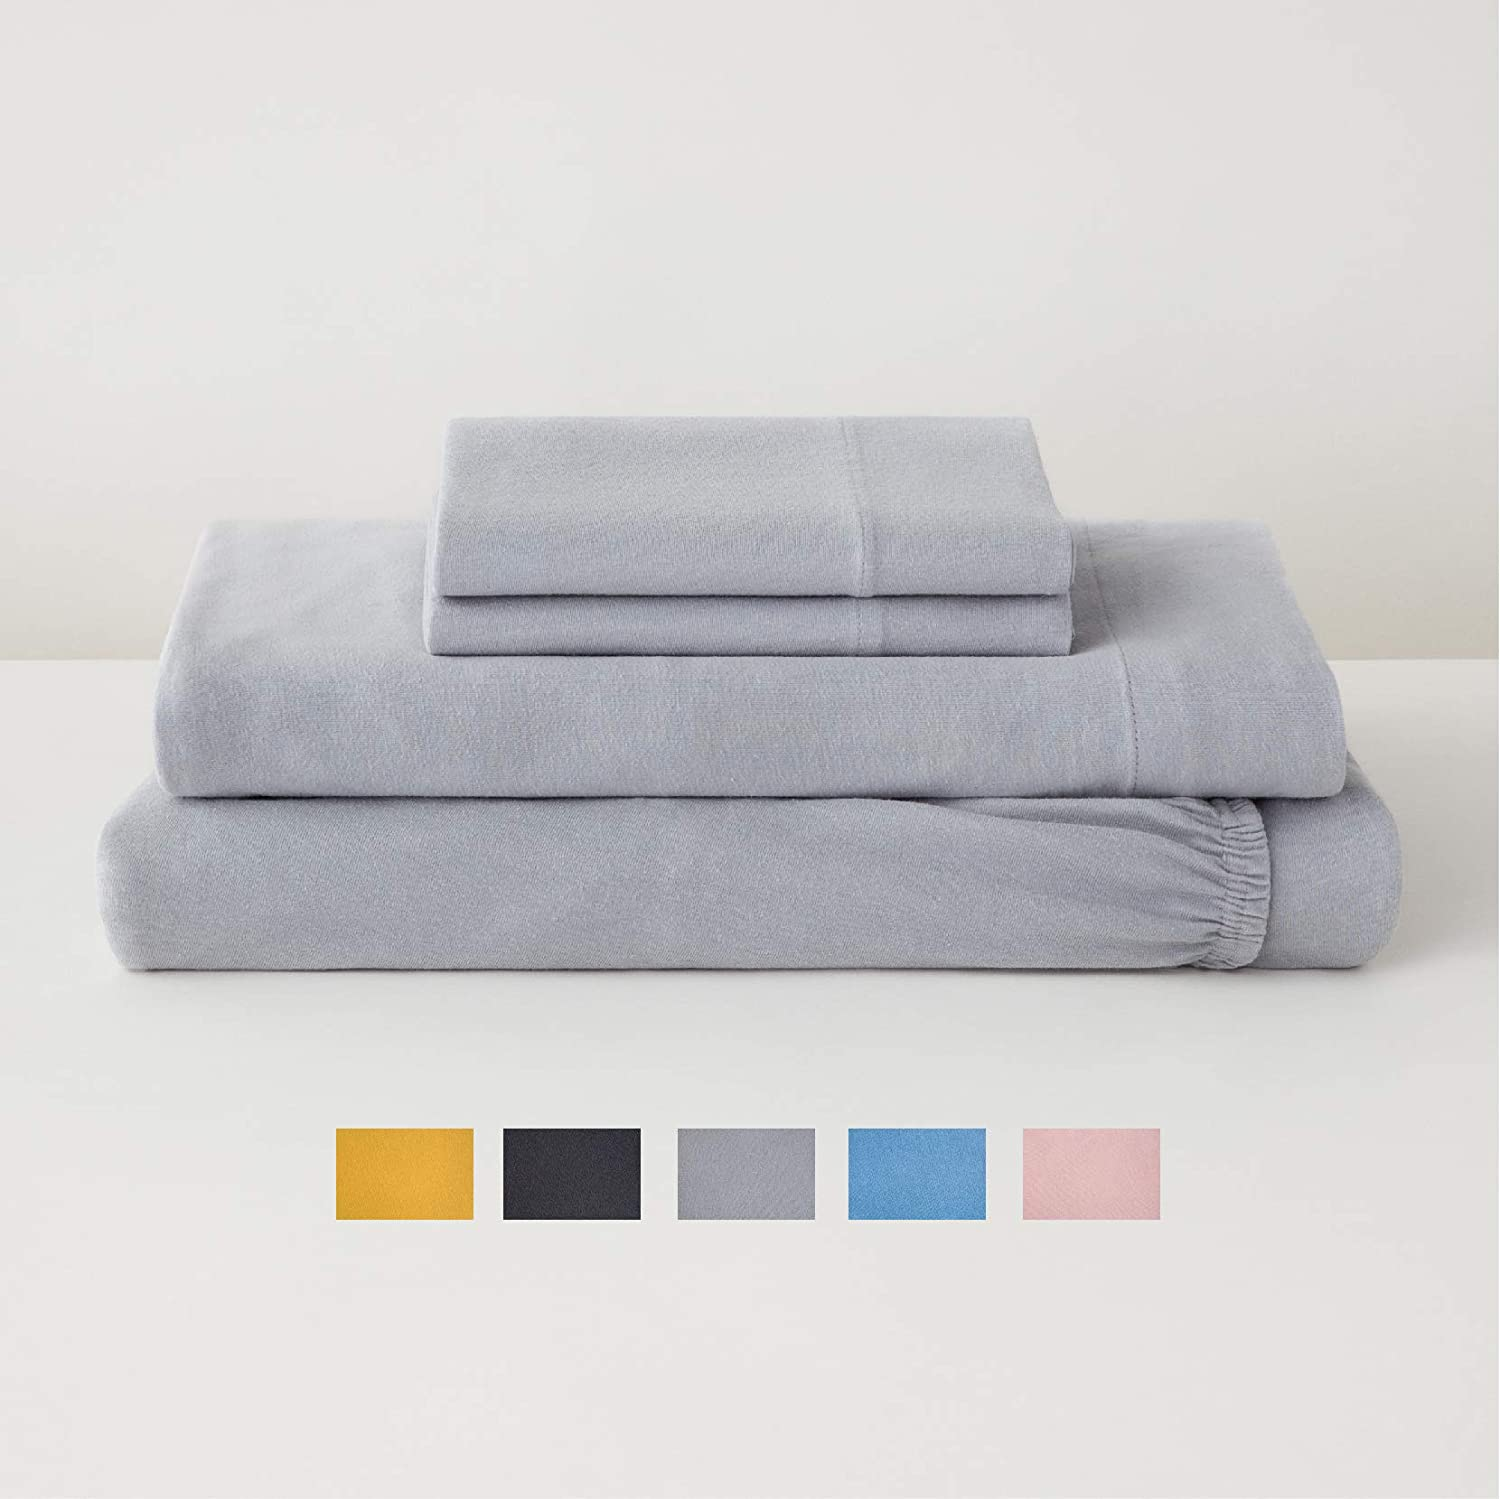 Tuft & Needle Jersey Sheet Set, Extra Soft Cotton and Tencel Lyocell - Queen - Fog